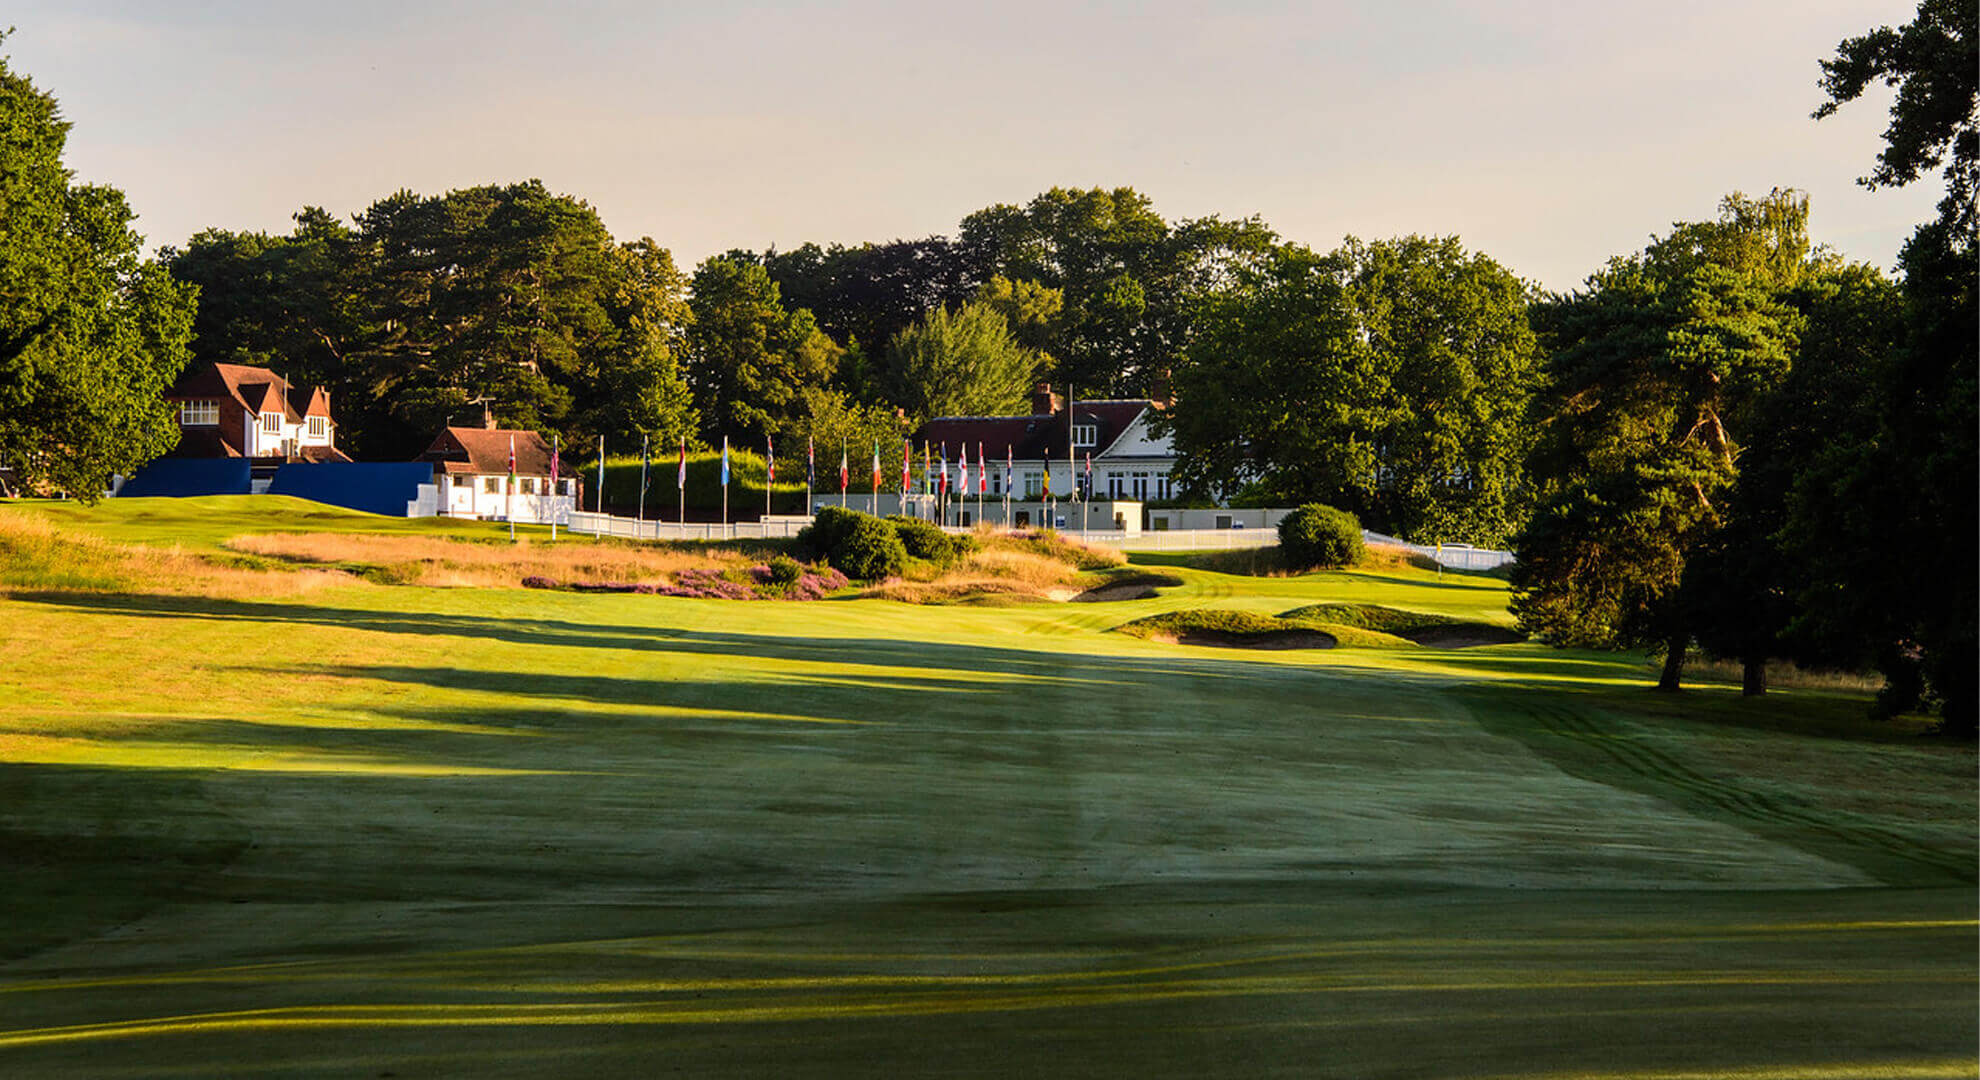 Sunningdale New Golf Course, South East England